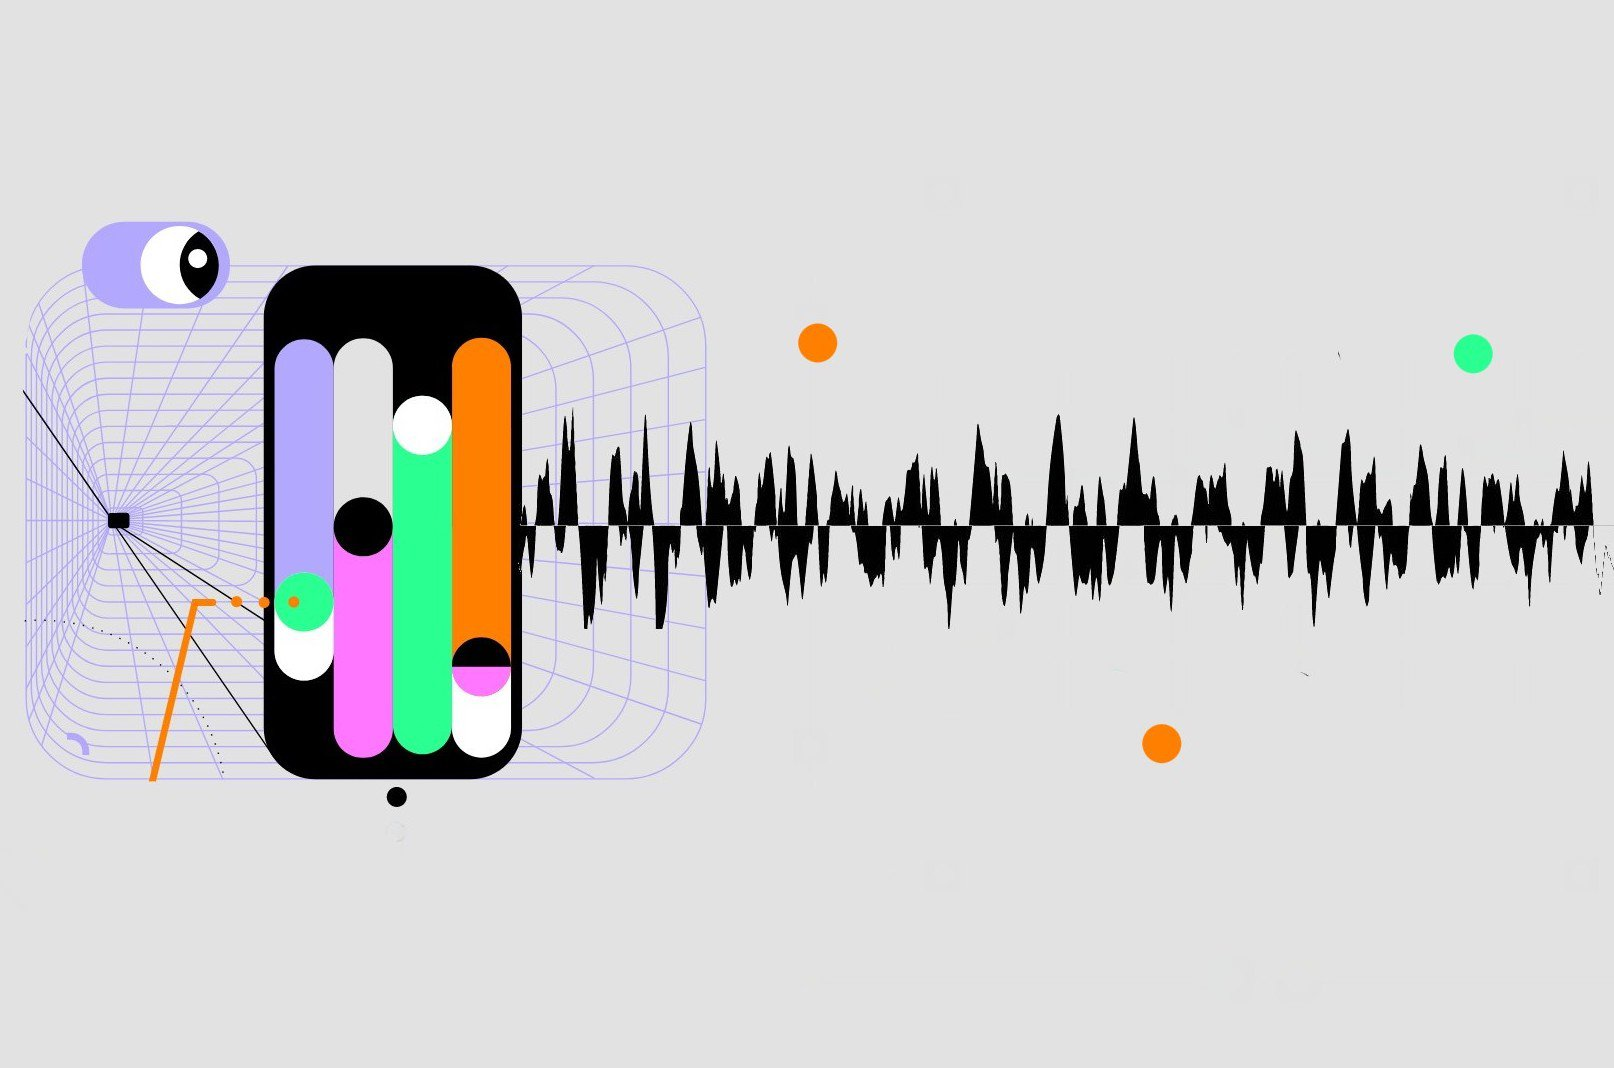 An illustration shows colorful images that resemble a smartphone and sound waves.